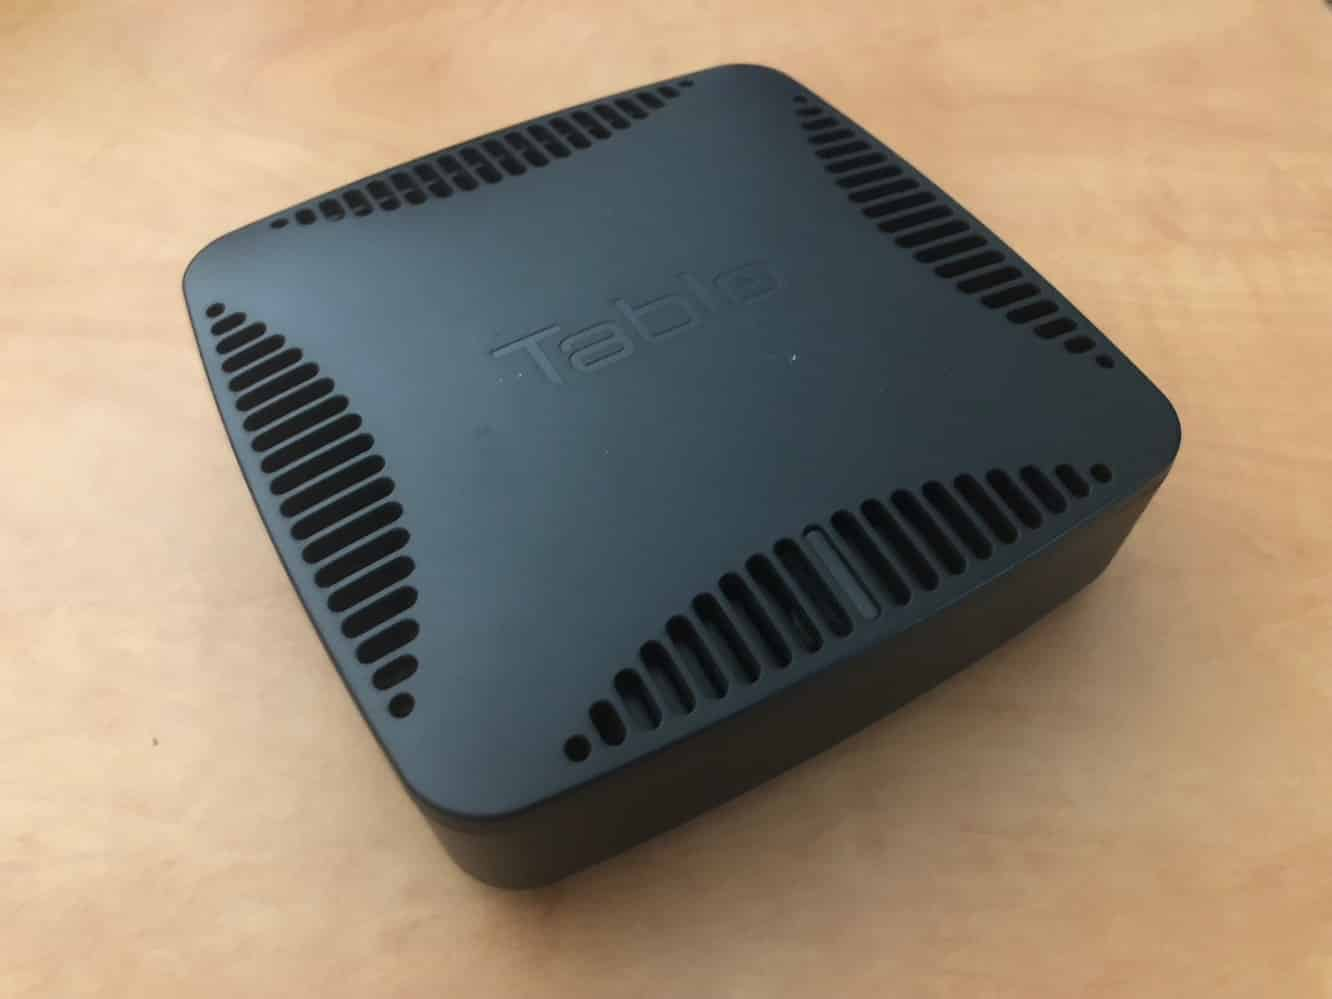 Review: Nuvyyo Tablo Dual Lite Over-the-Air Television DVR